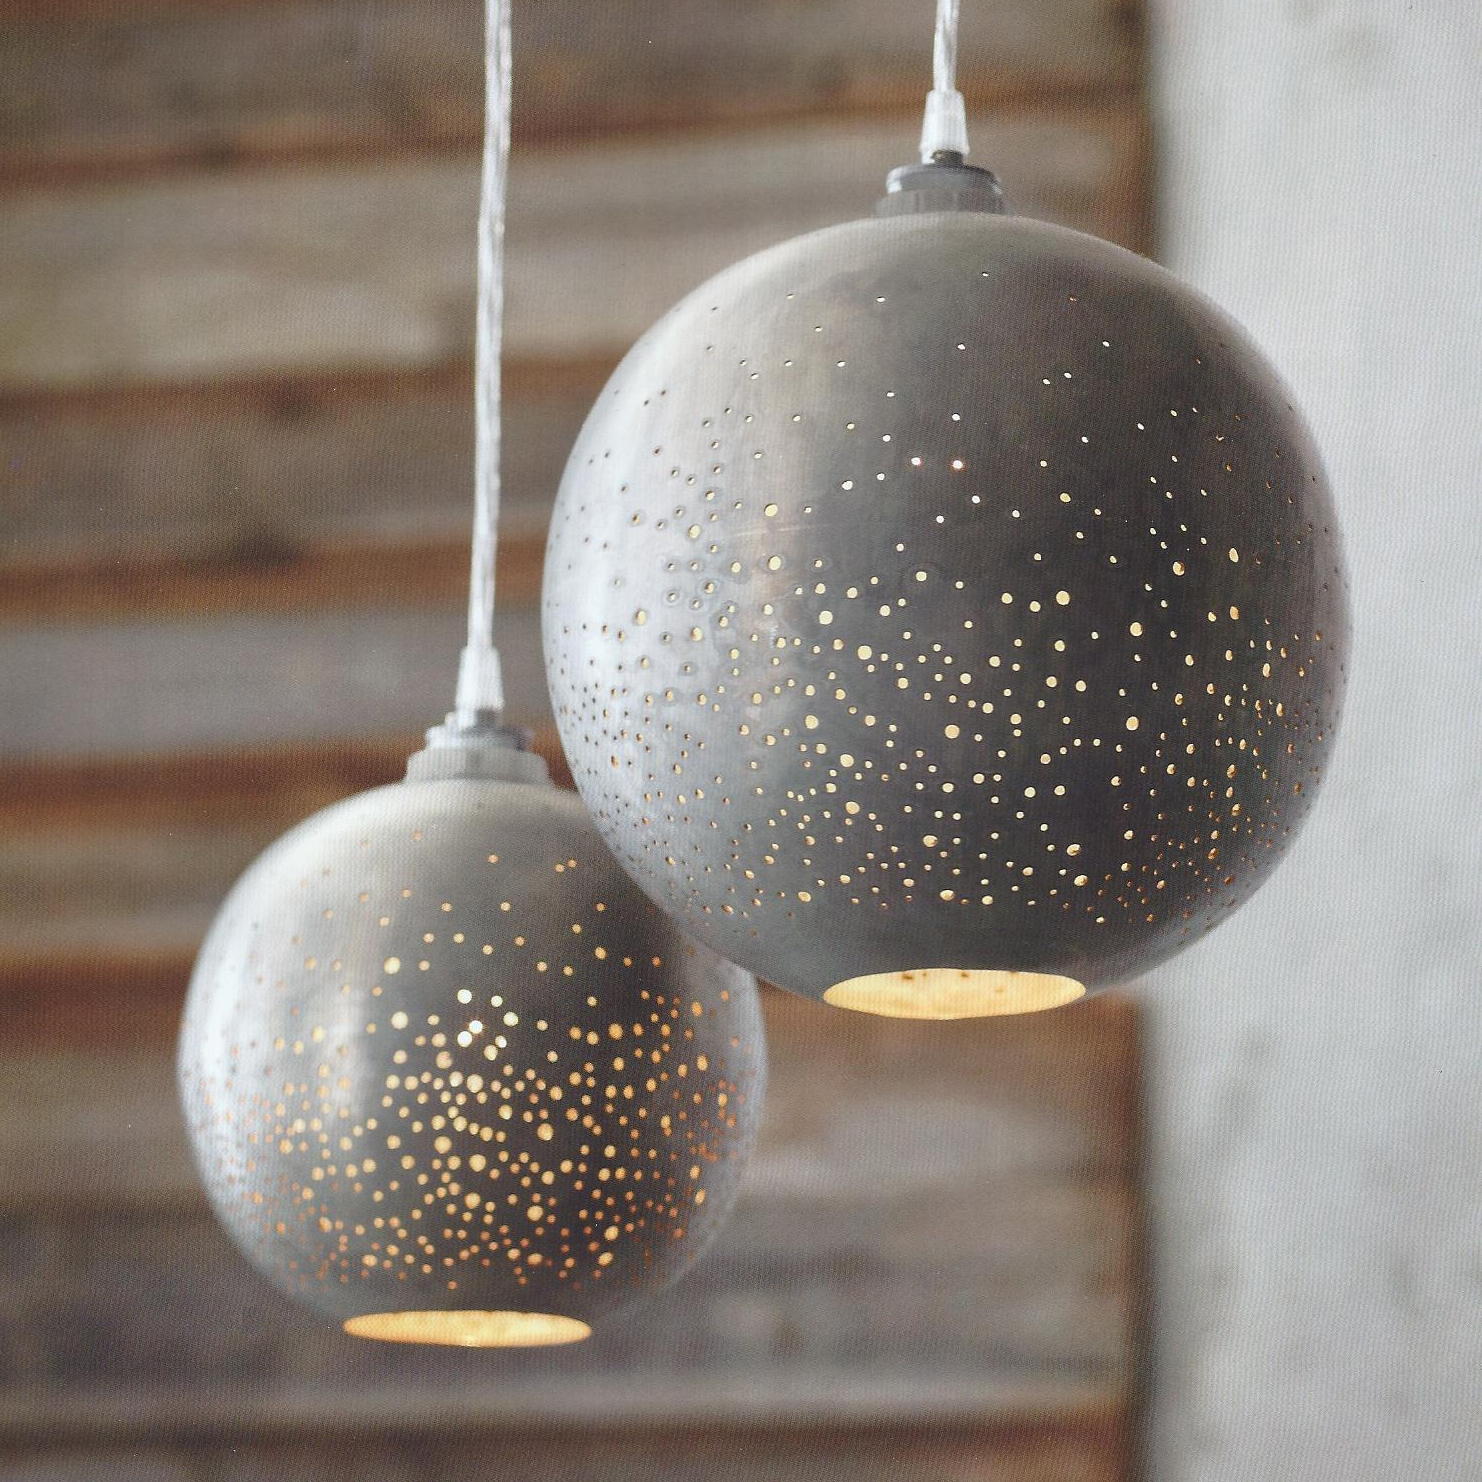 roost lighting. Roost Lighting By Constellation Home Accents Ideas U0026 Inspiration Roost Lighting D